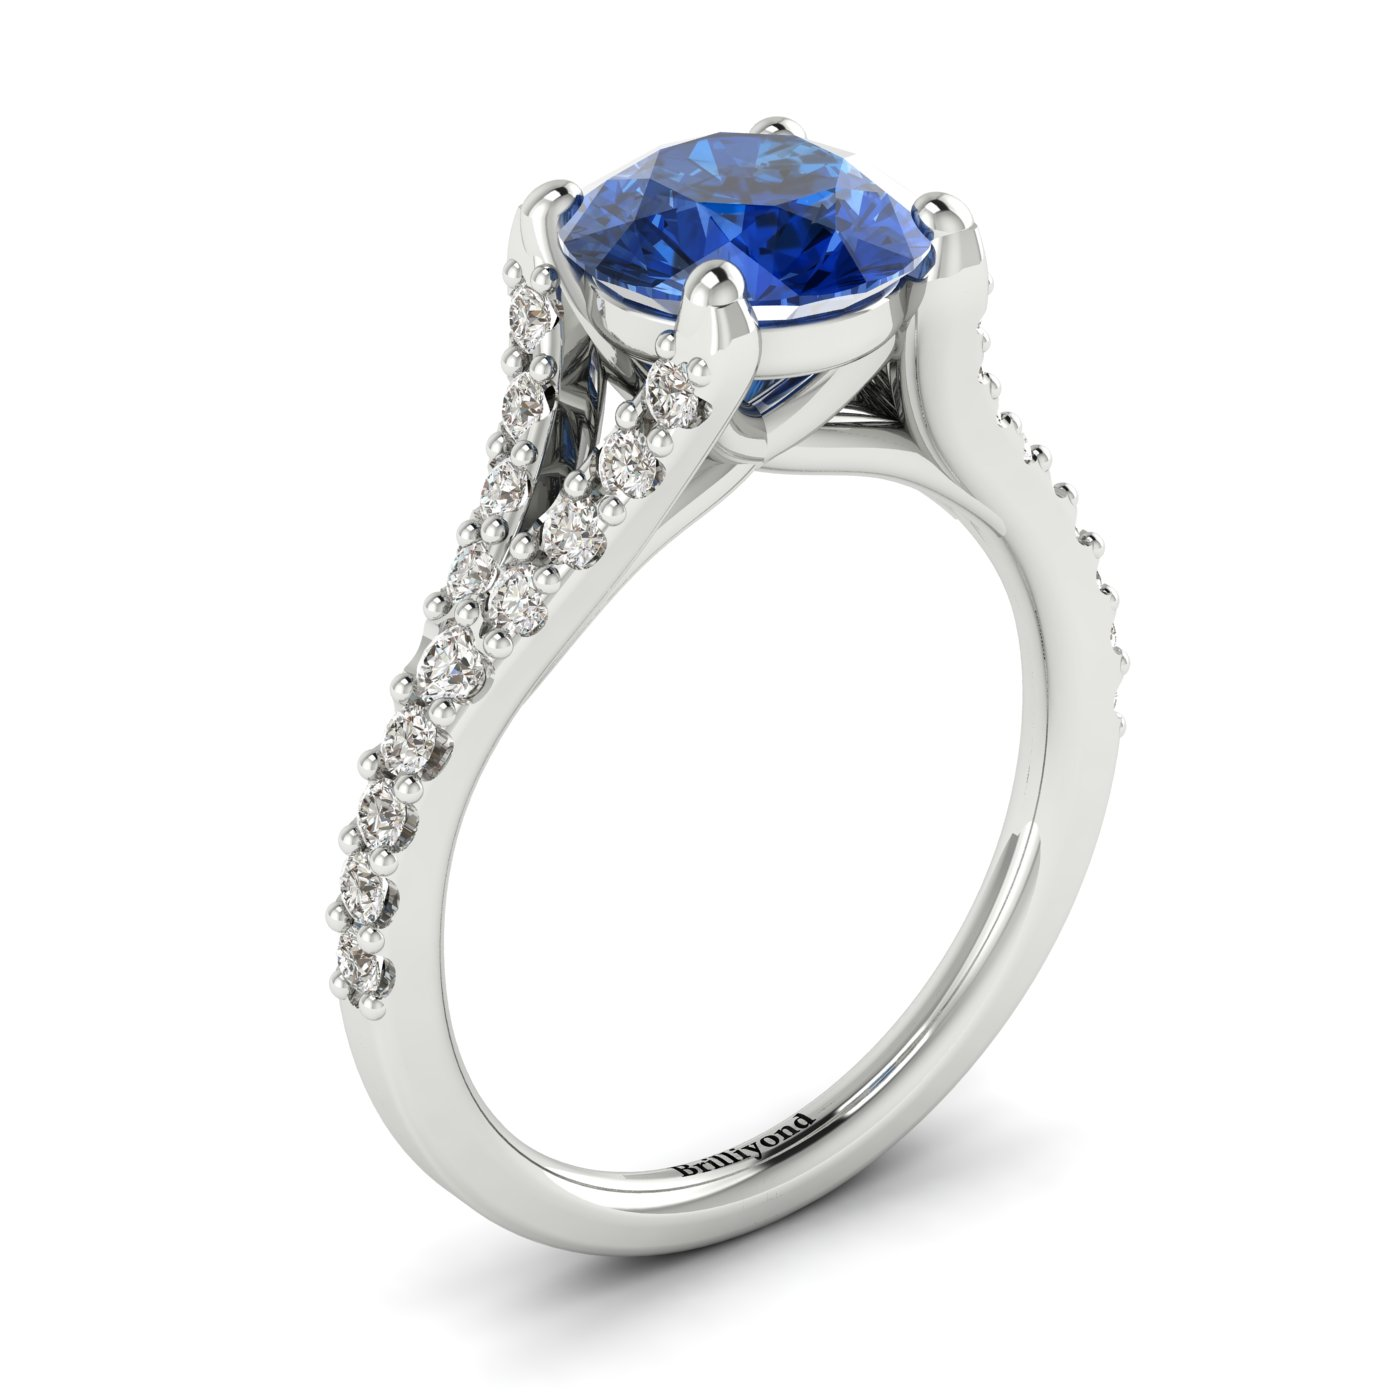 An exquisite sapphire engagement ring with 26 white cubic zirconia accent stones.